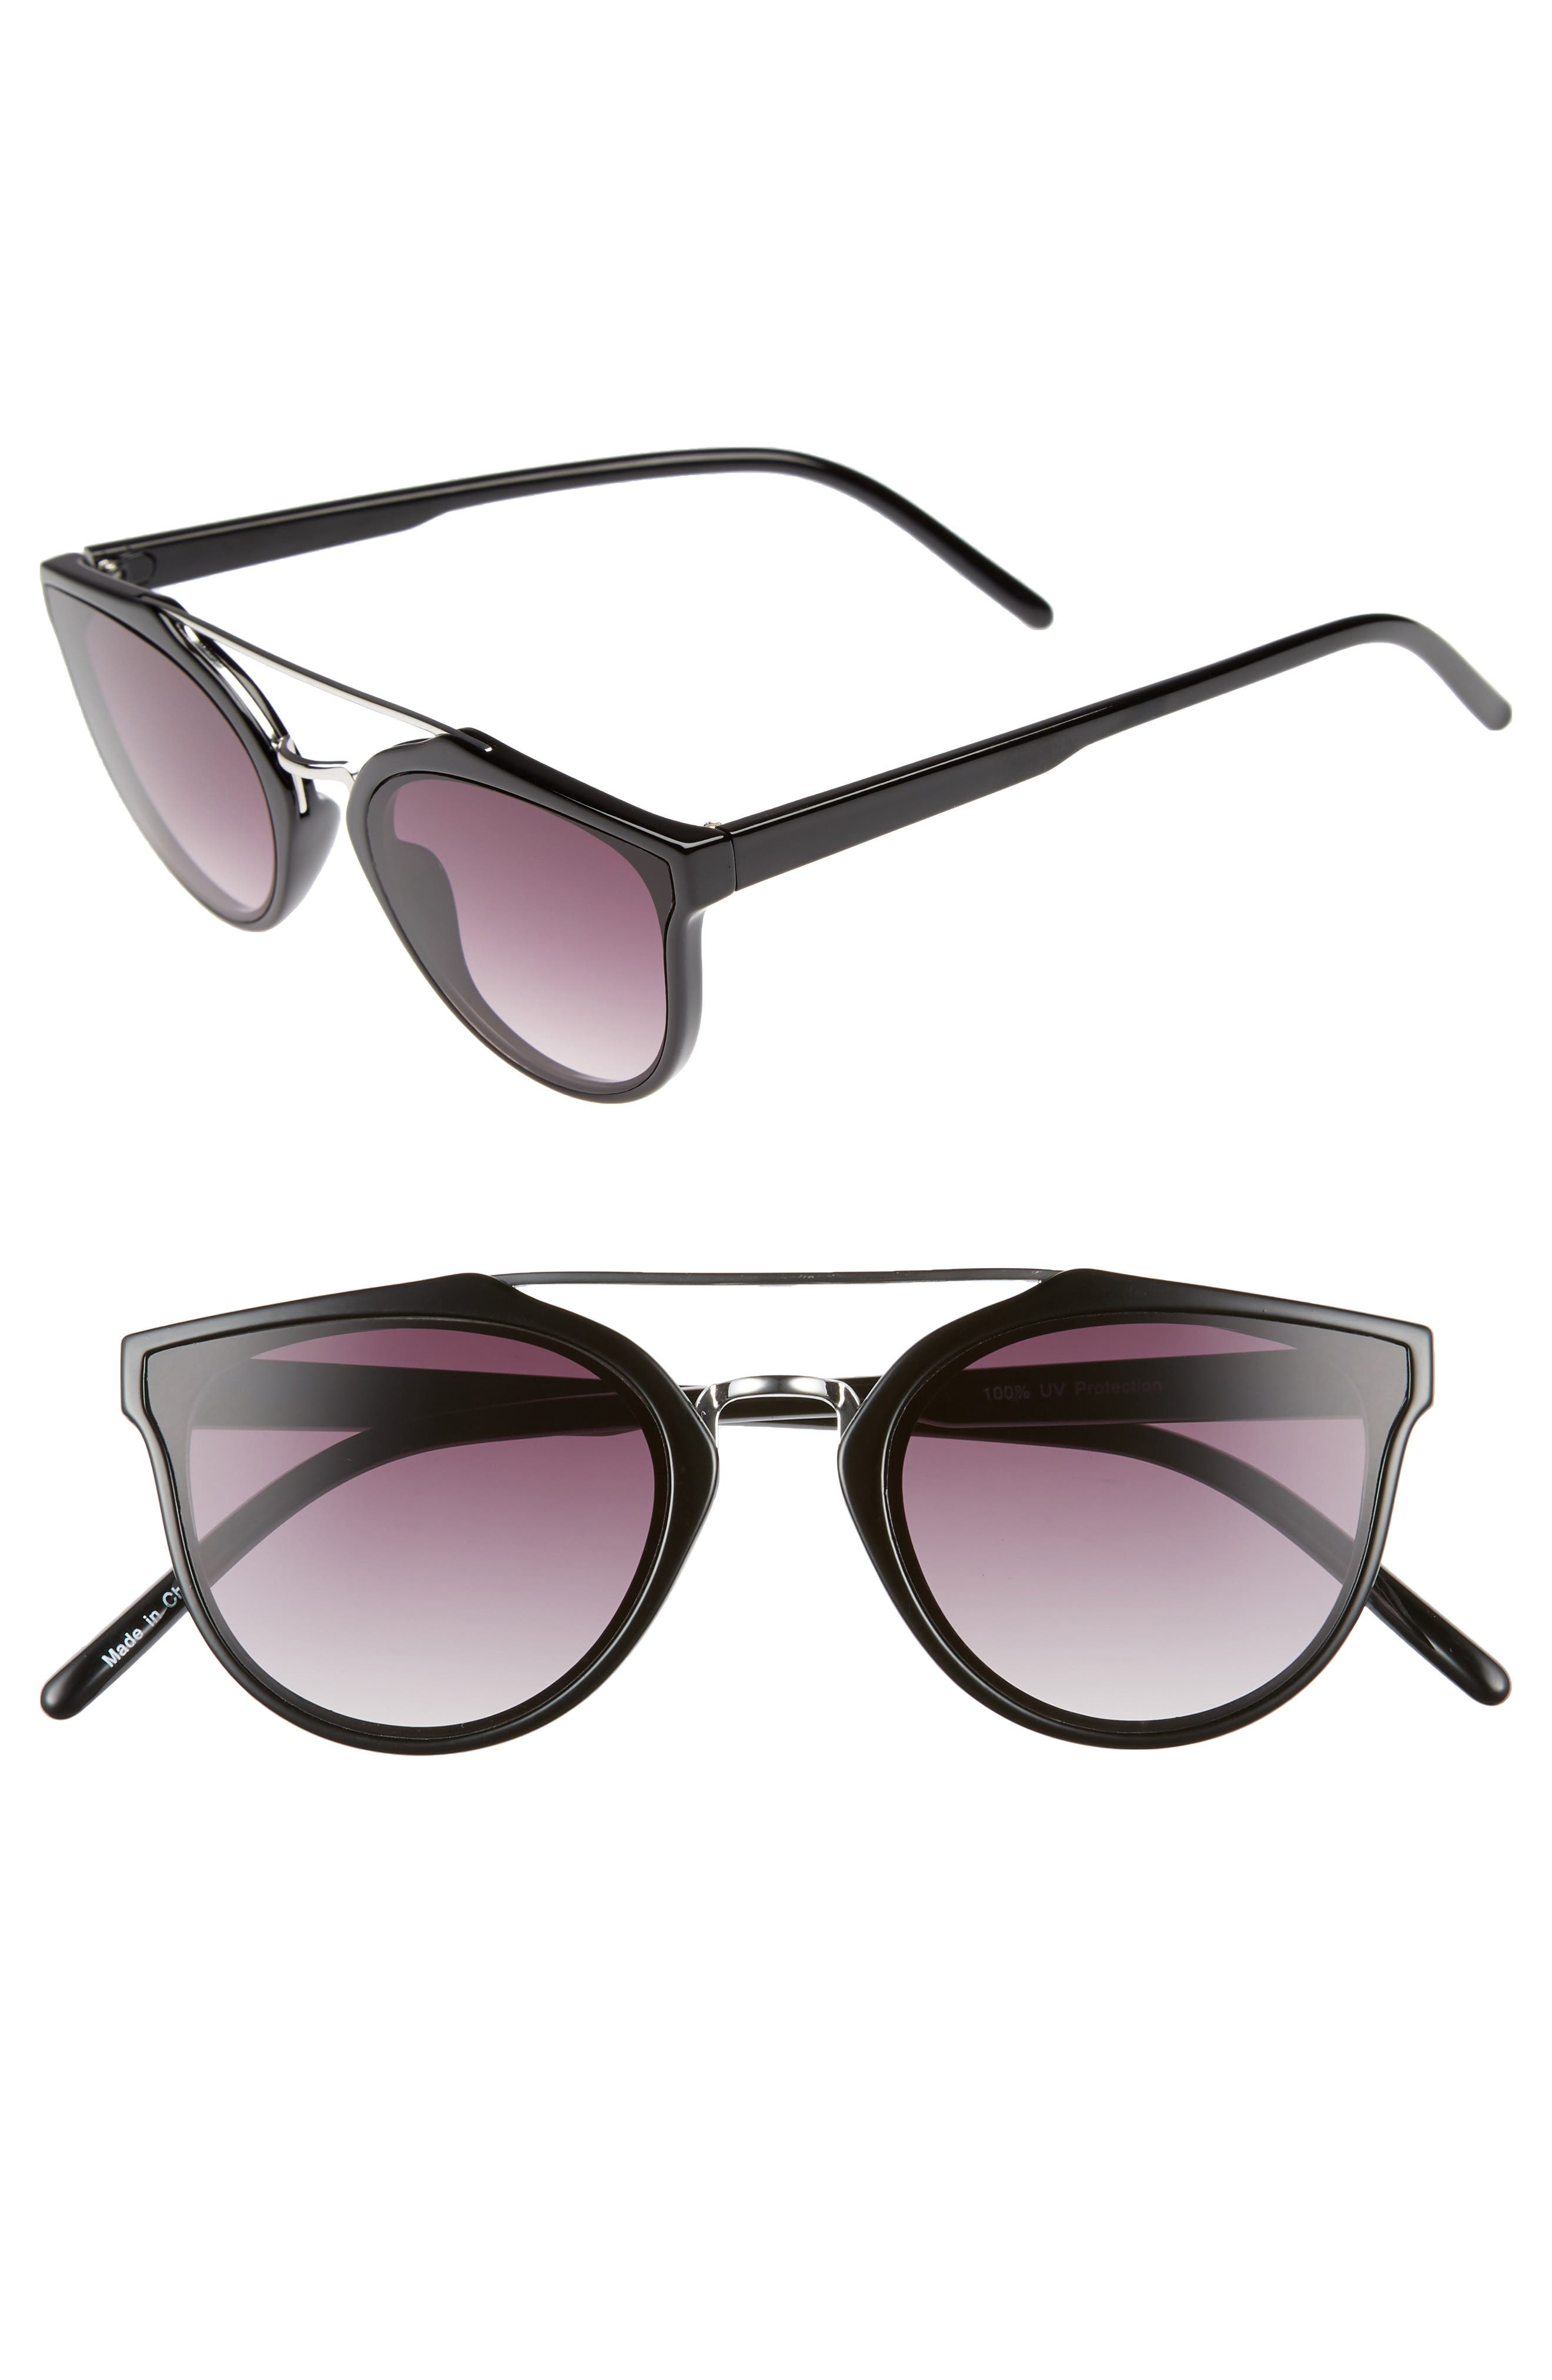 54mm Aviator Sunglasses,                             Main thumbnail 1, color,                             001